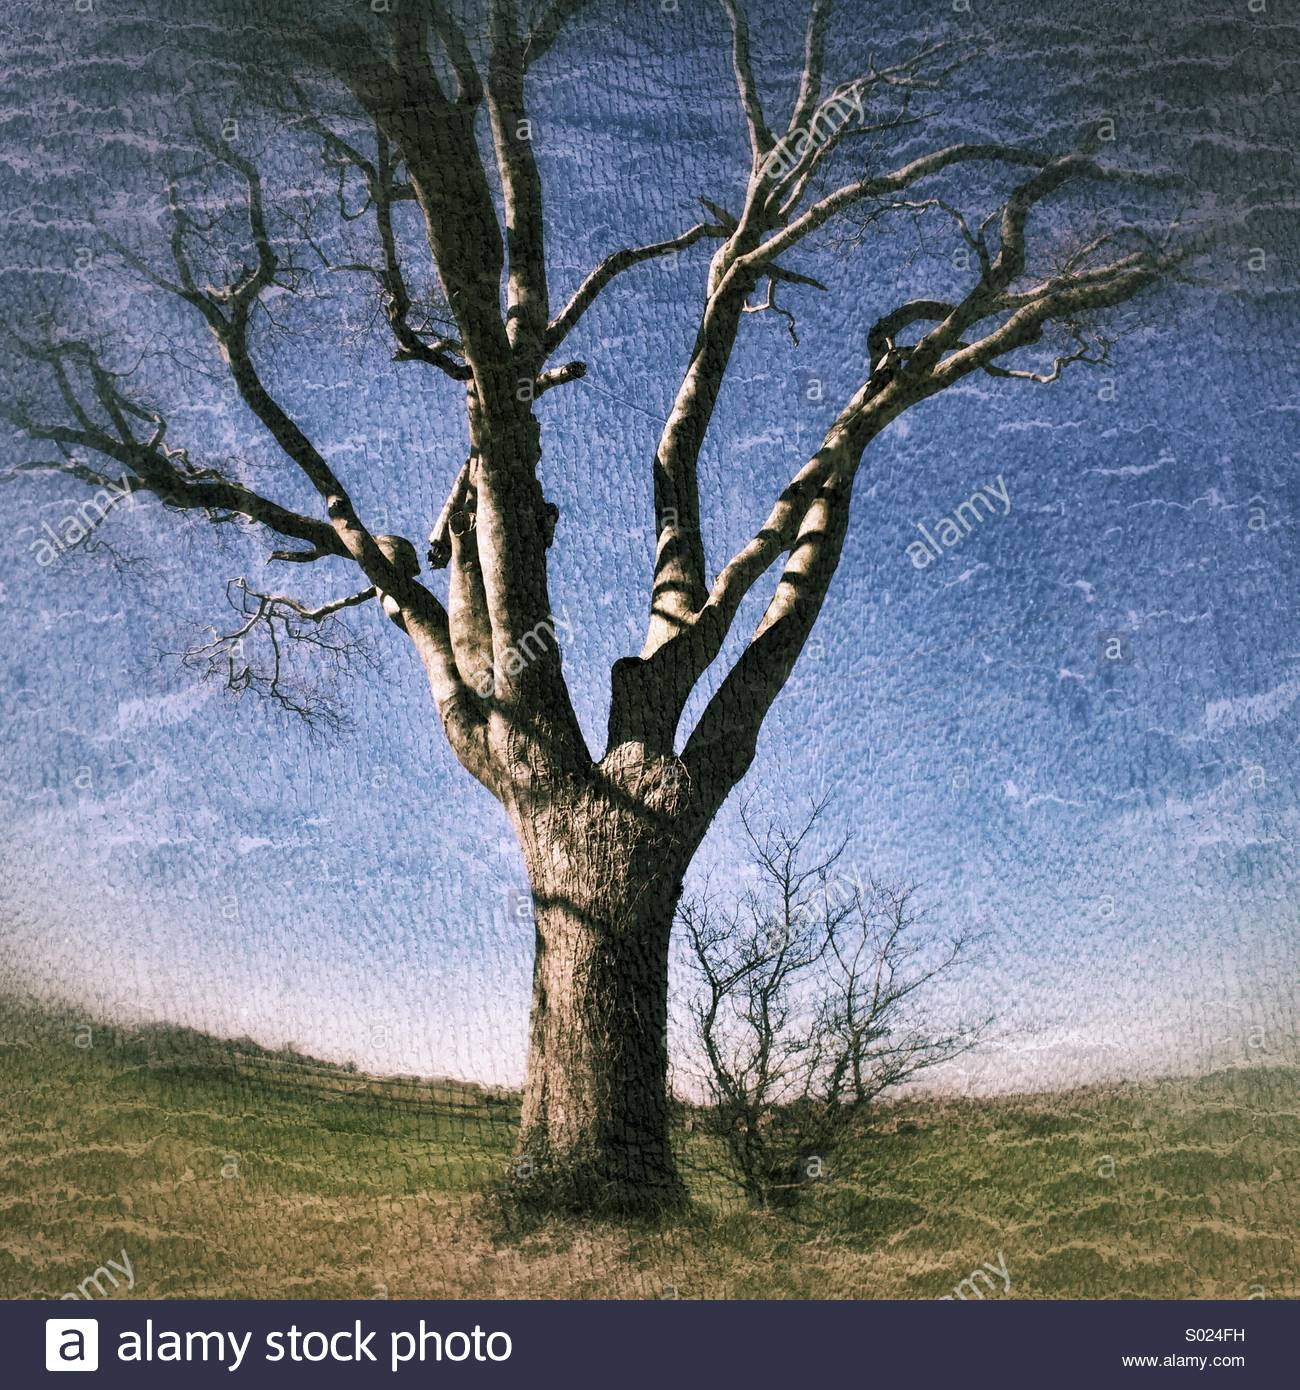 Solitary Bare Tree, no Leaves - Stock Image